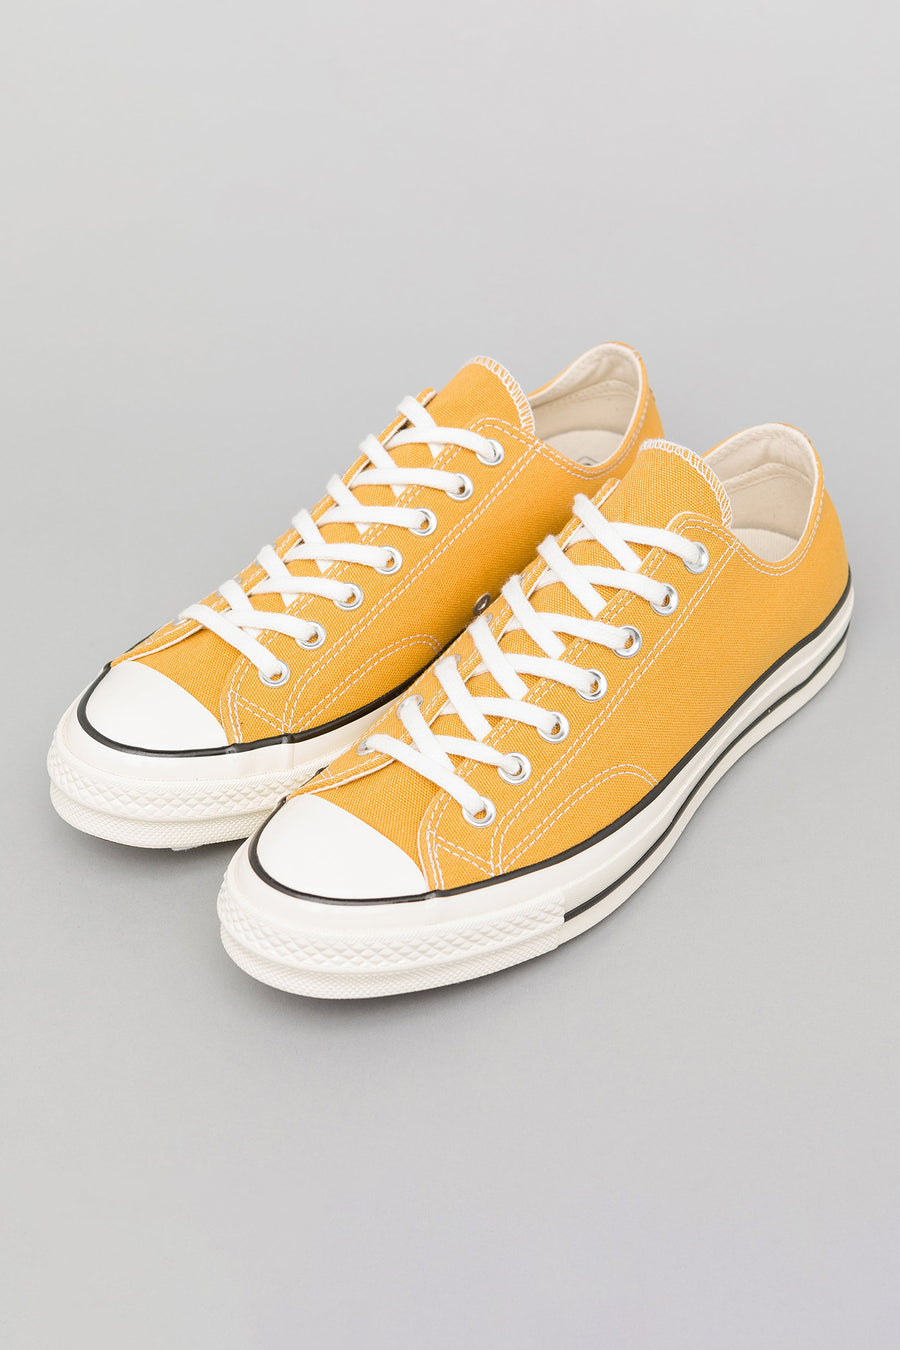 Converse Chuck 70 Ox in Sunflower - Notre